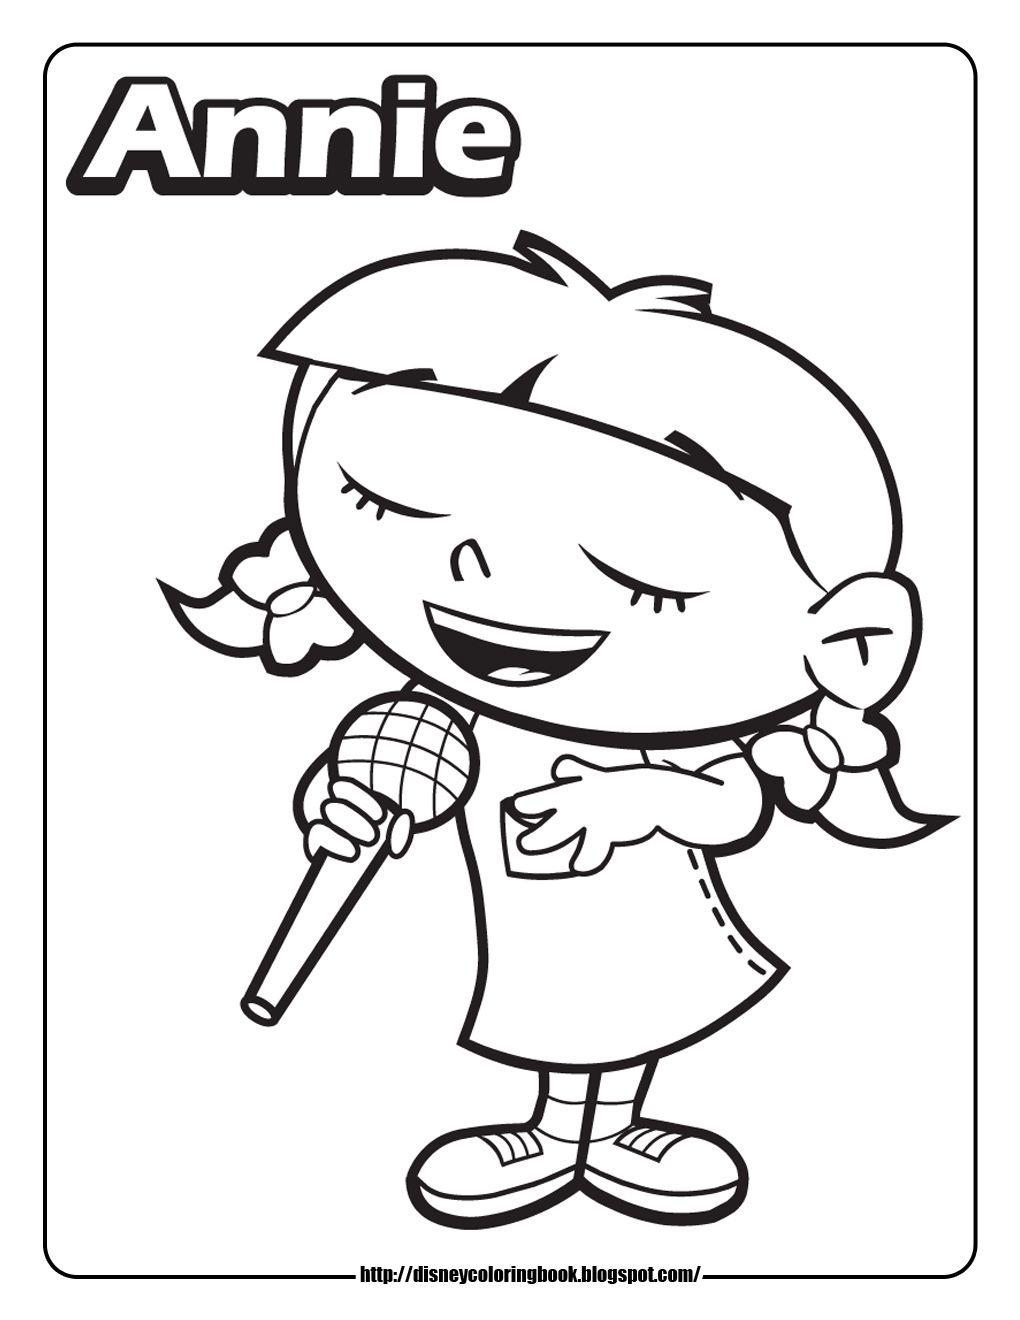 little einsteins annie coloring page sydney birthday ideas